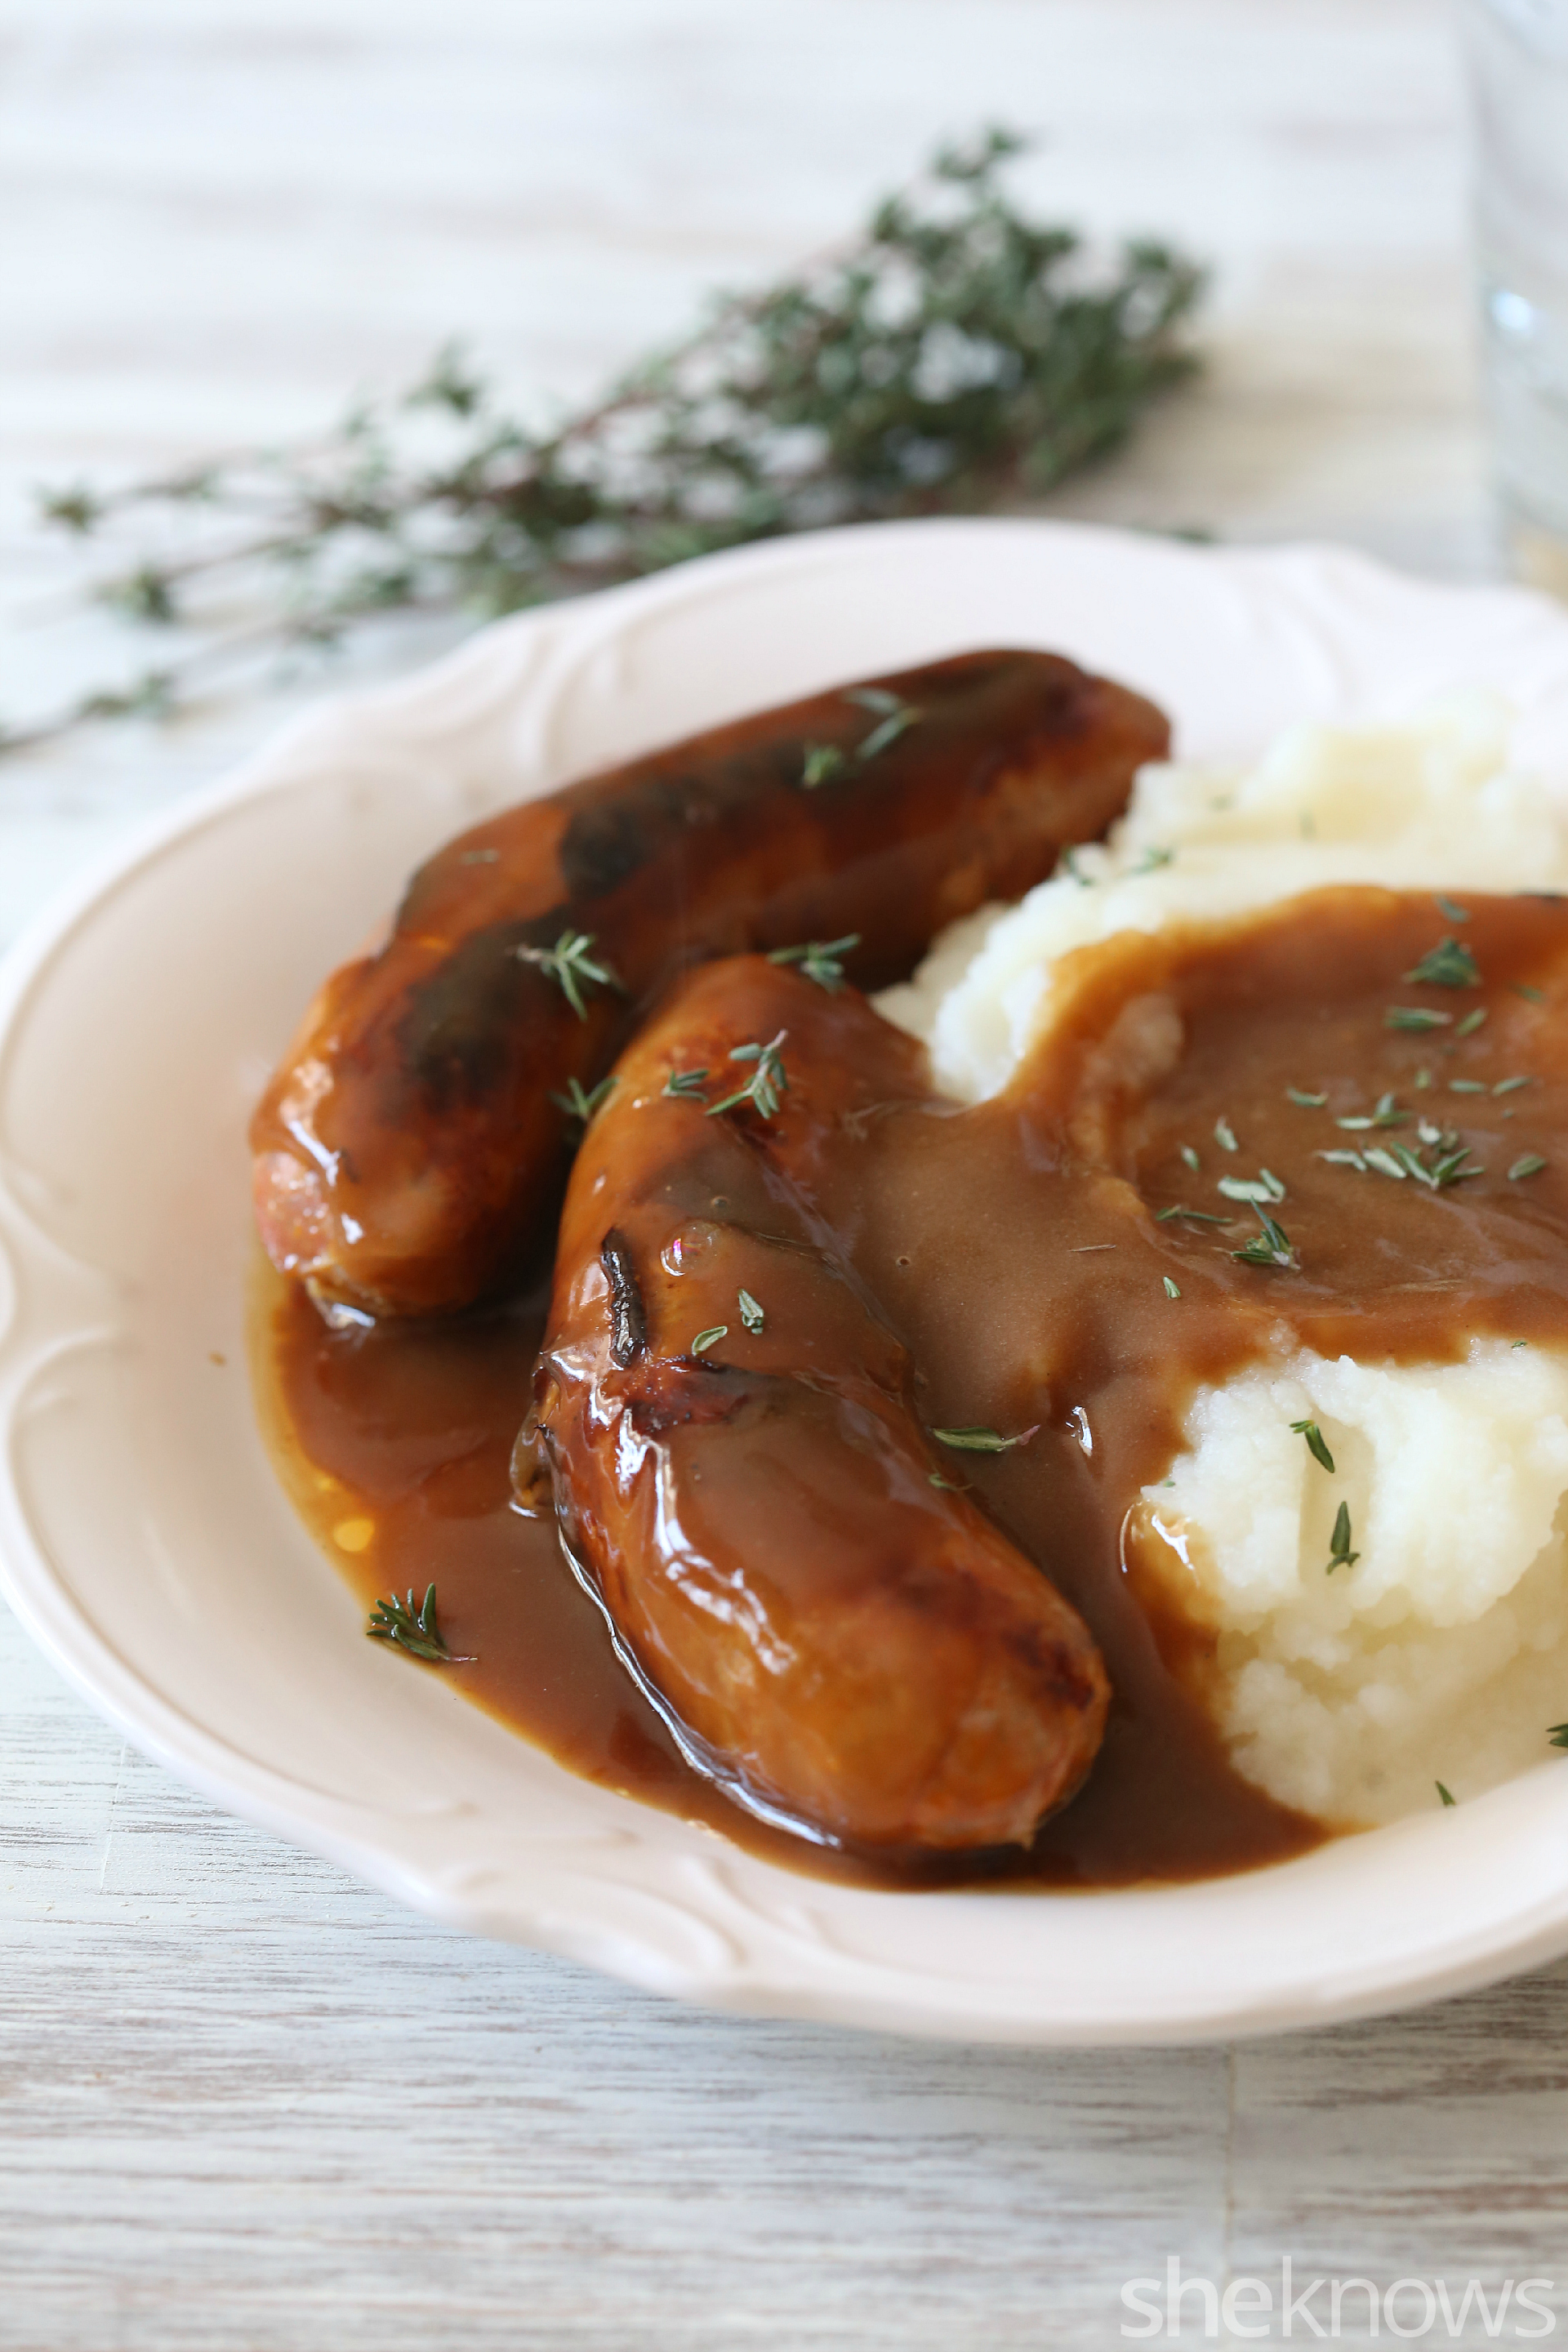 Make Guinness gravy to add to your bangers and mash